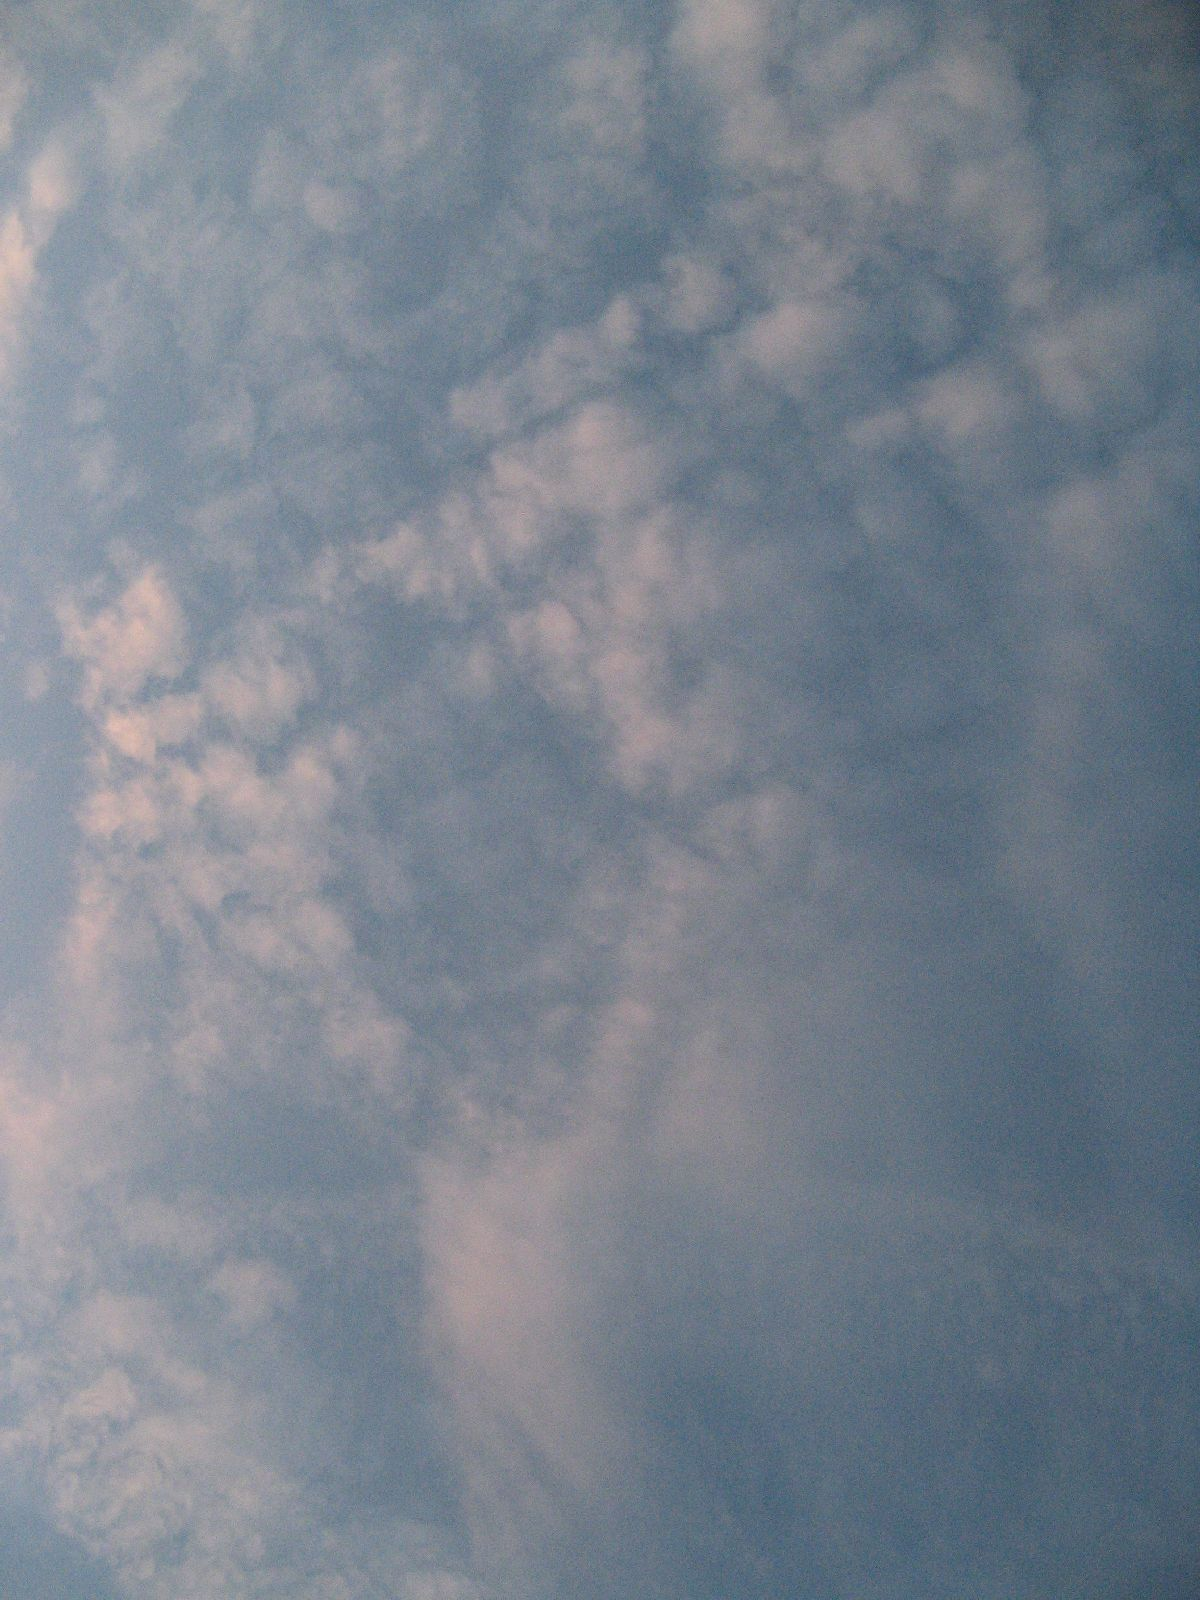 Sky_Clouds_Photo_Texture_B_03953